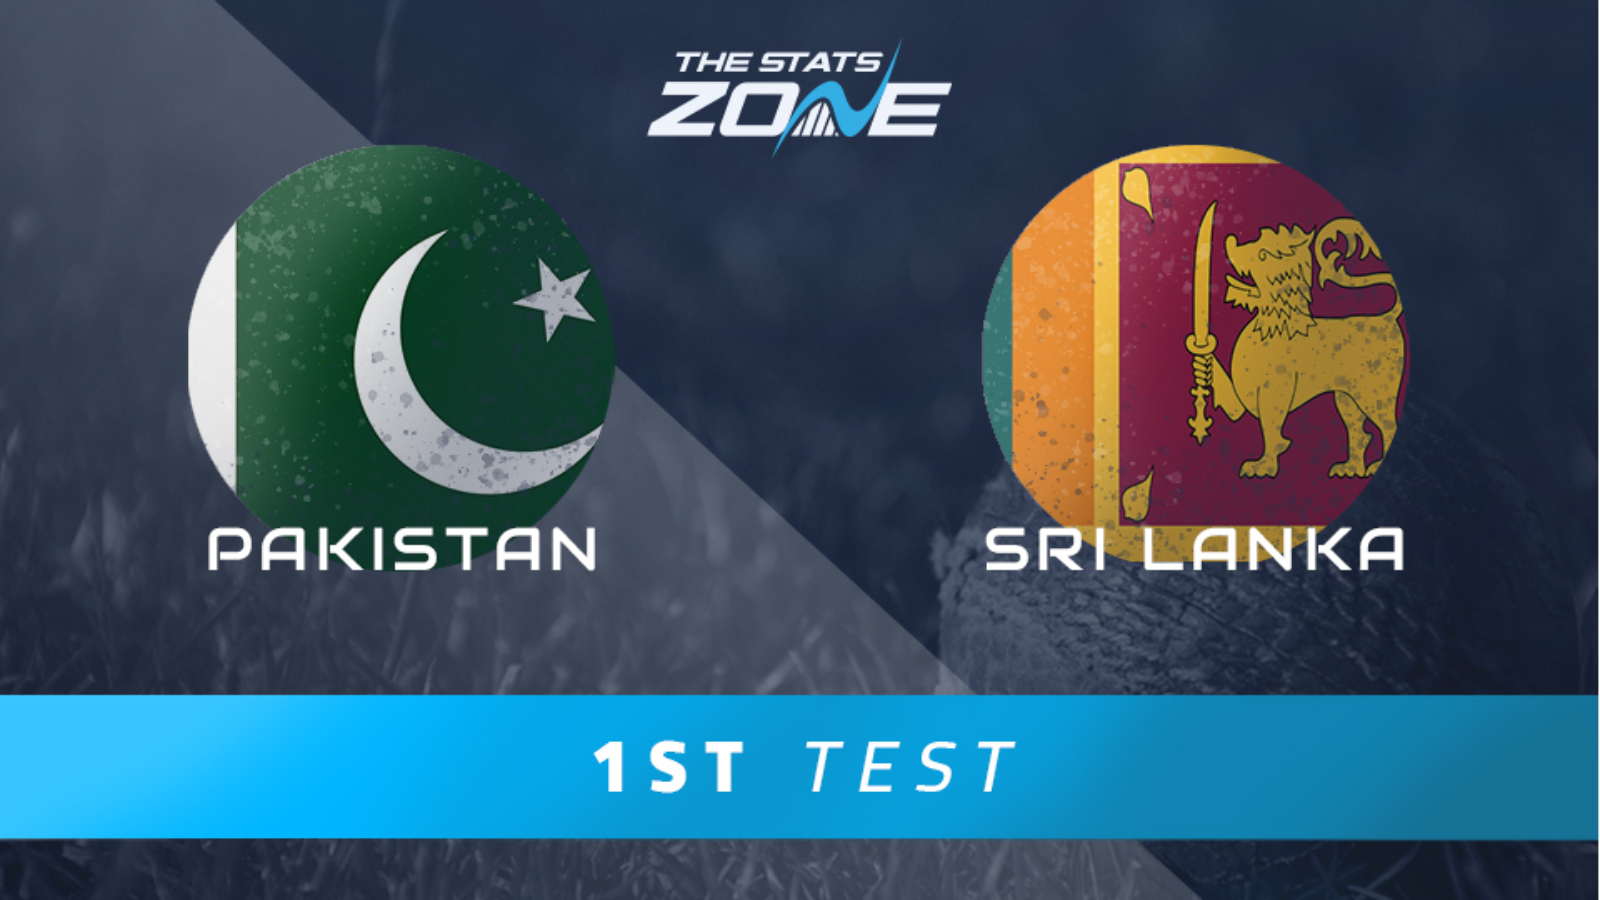 Sri Lanka Reach Pakistan For Test Series In Country Since 2009 Attack